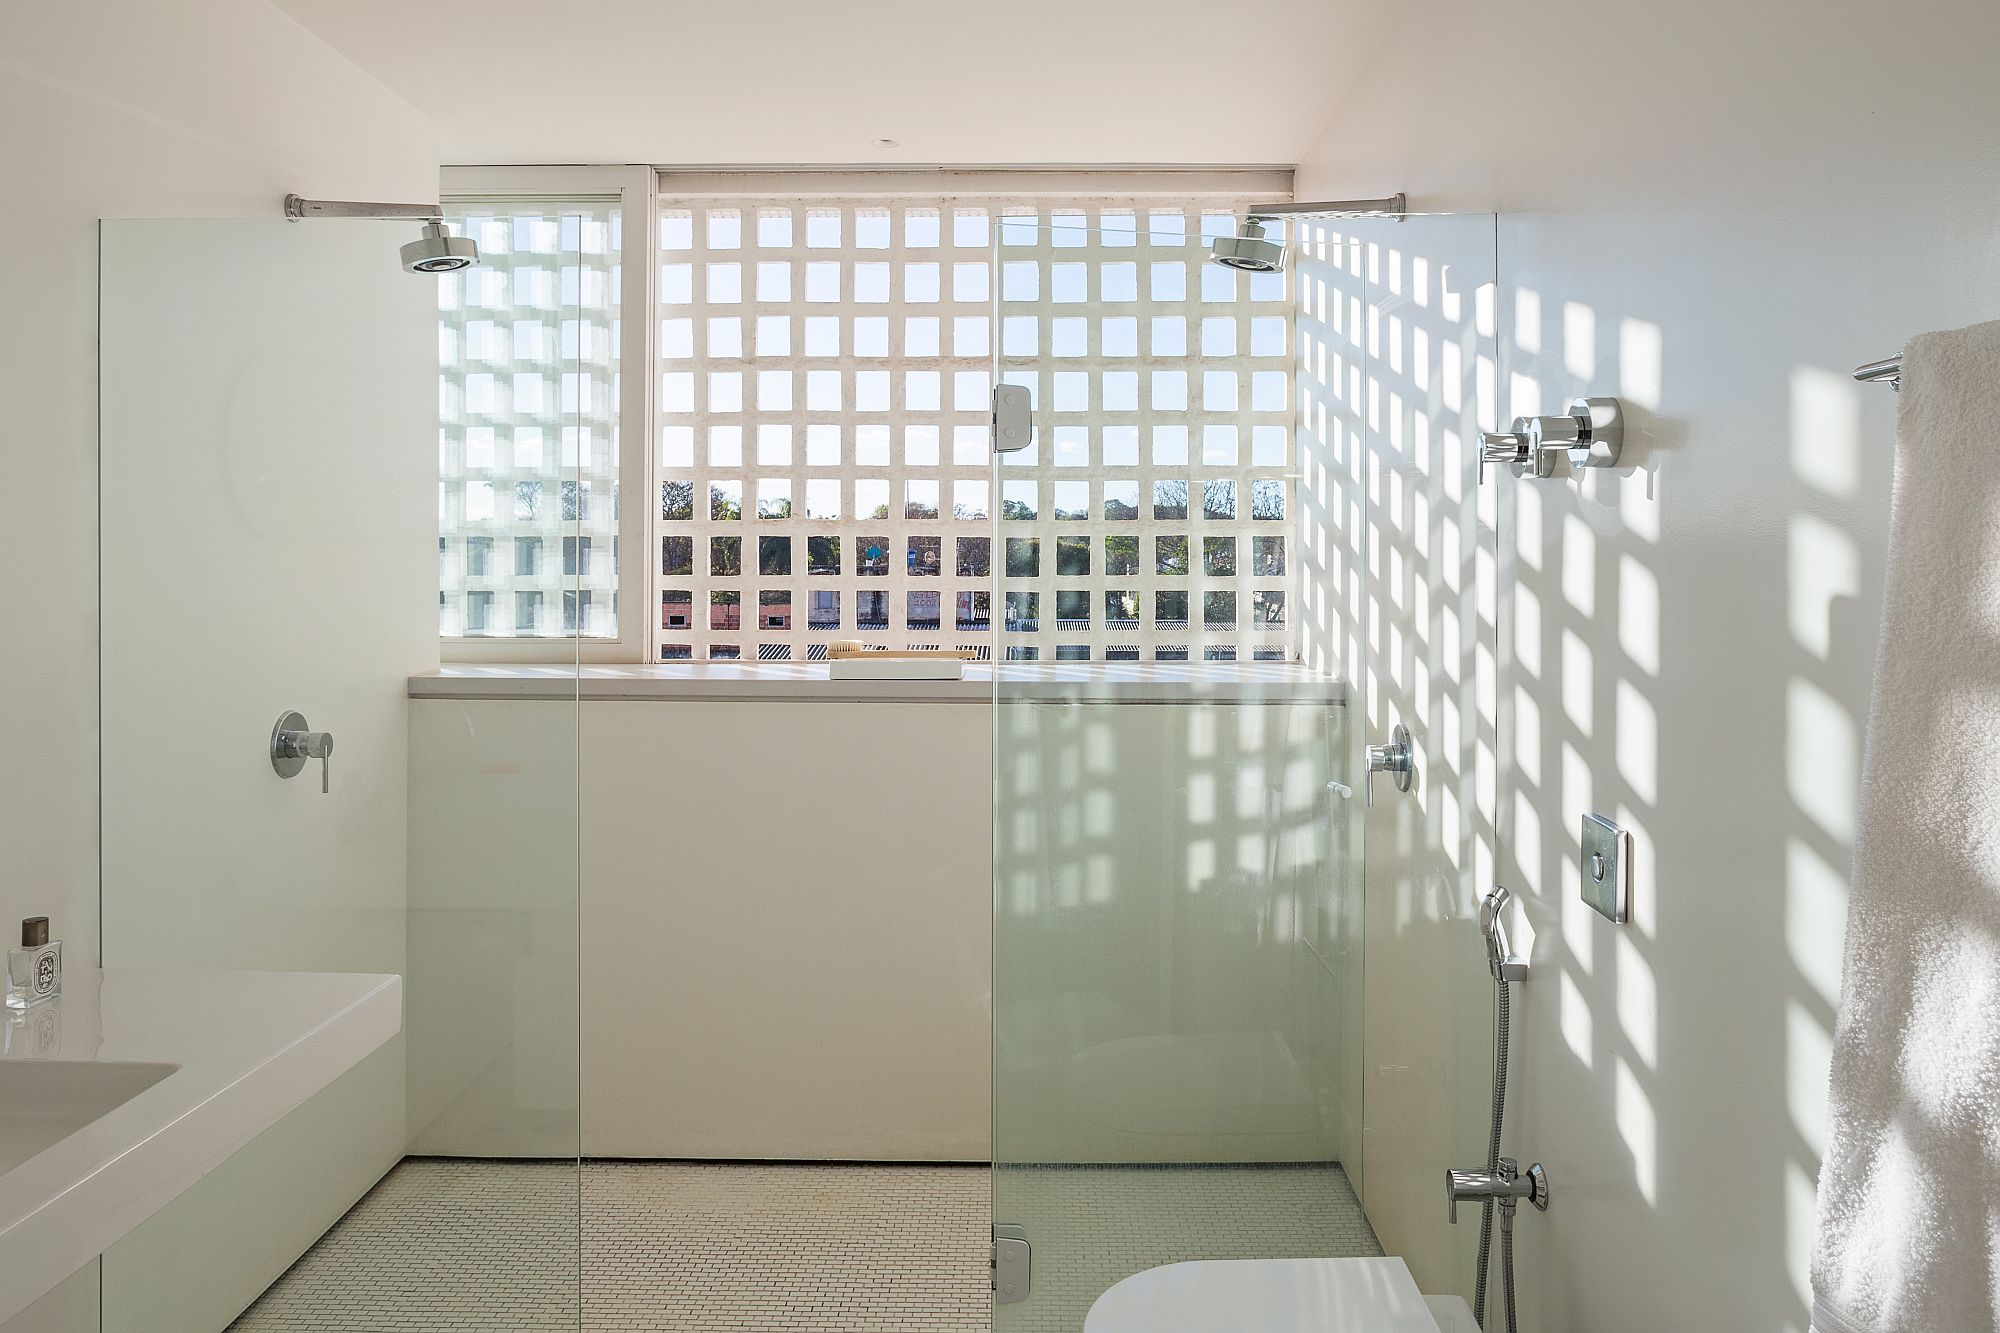 Bathroom in white with ample natural light and glass shower zone